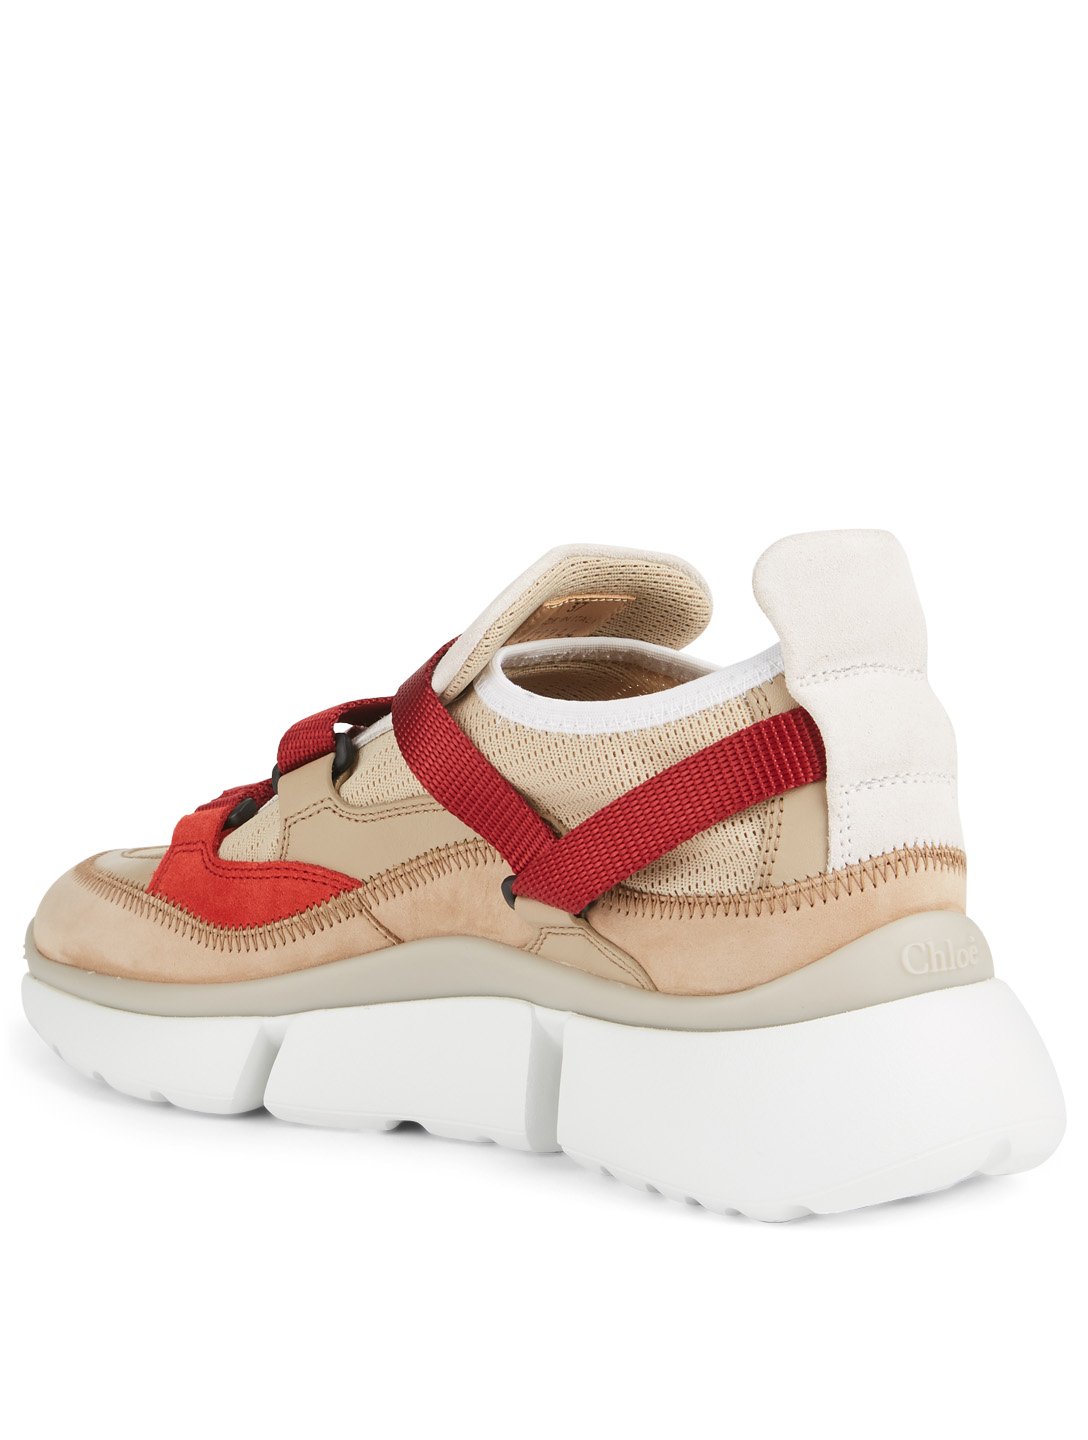 CHLOÉ Sonnie Suede And Mesh Sneakers Women's Neutral